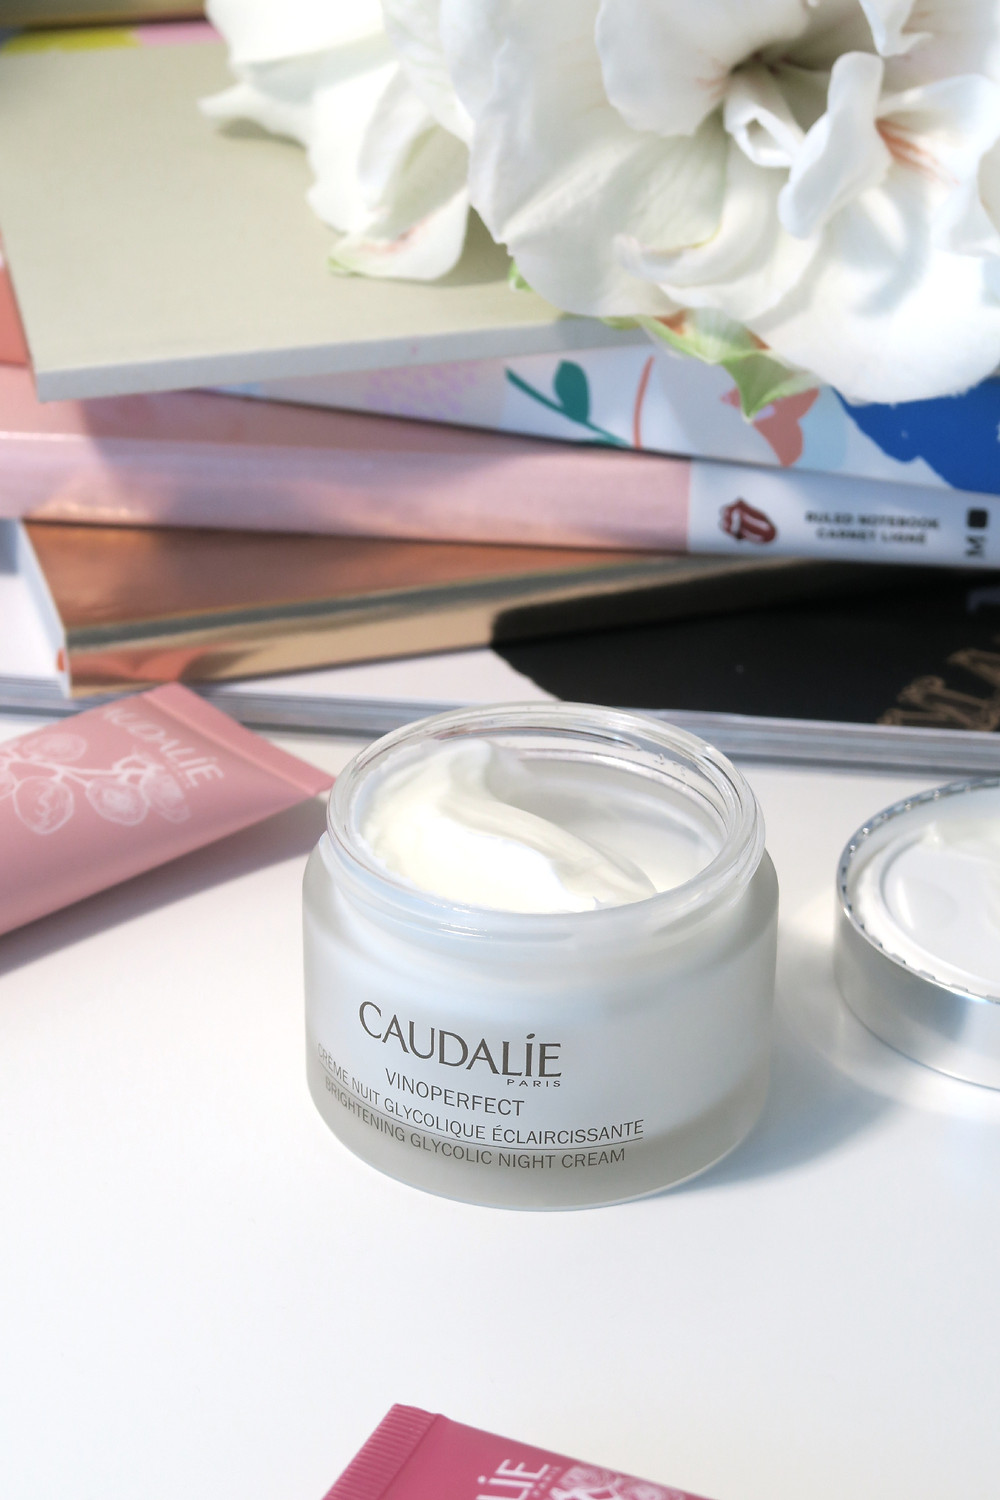 caudalie brightening glycolic night cream review